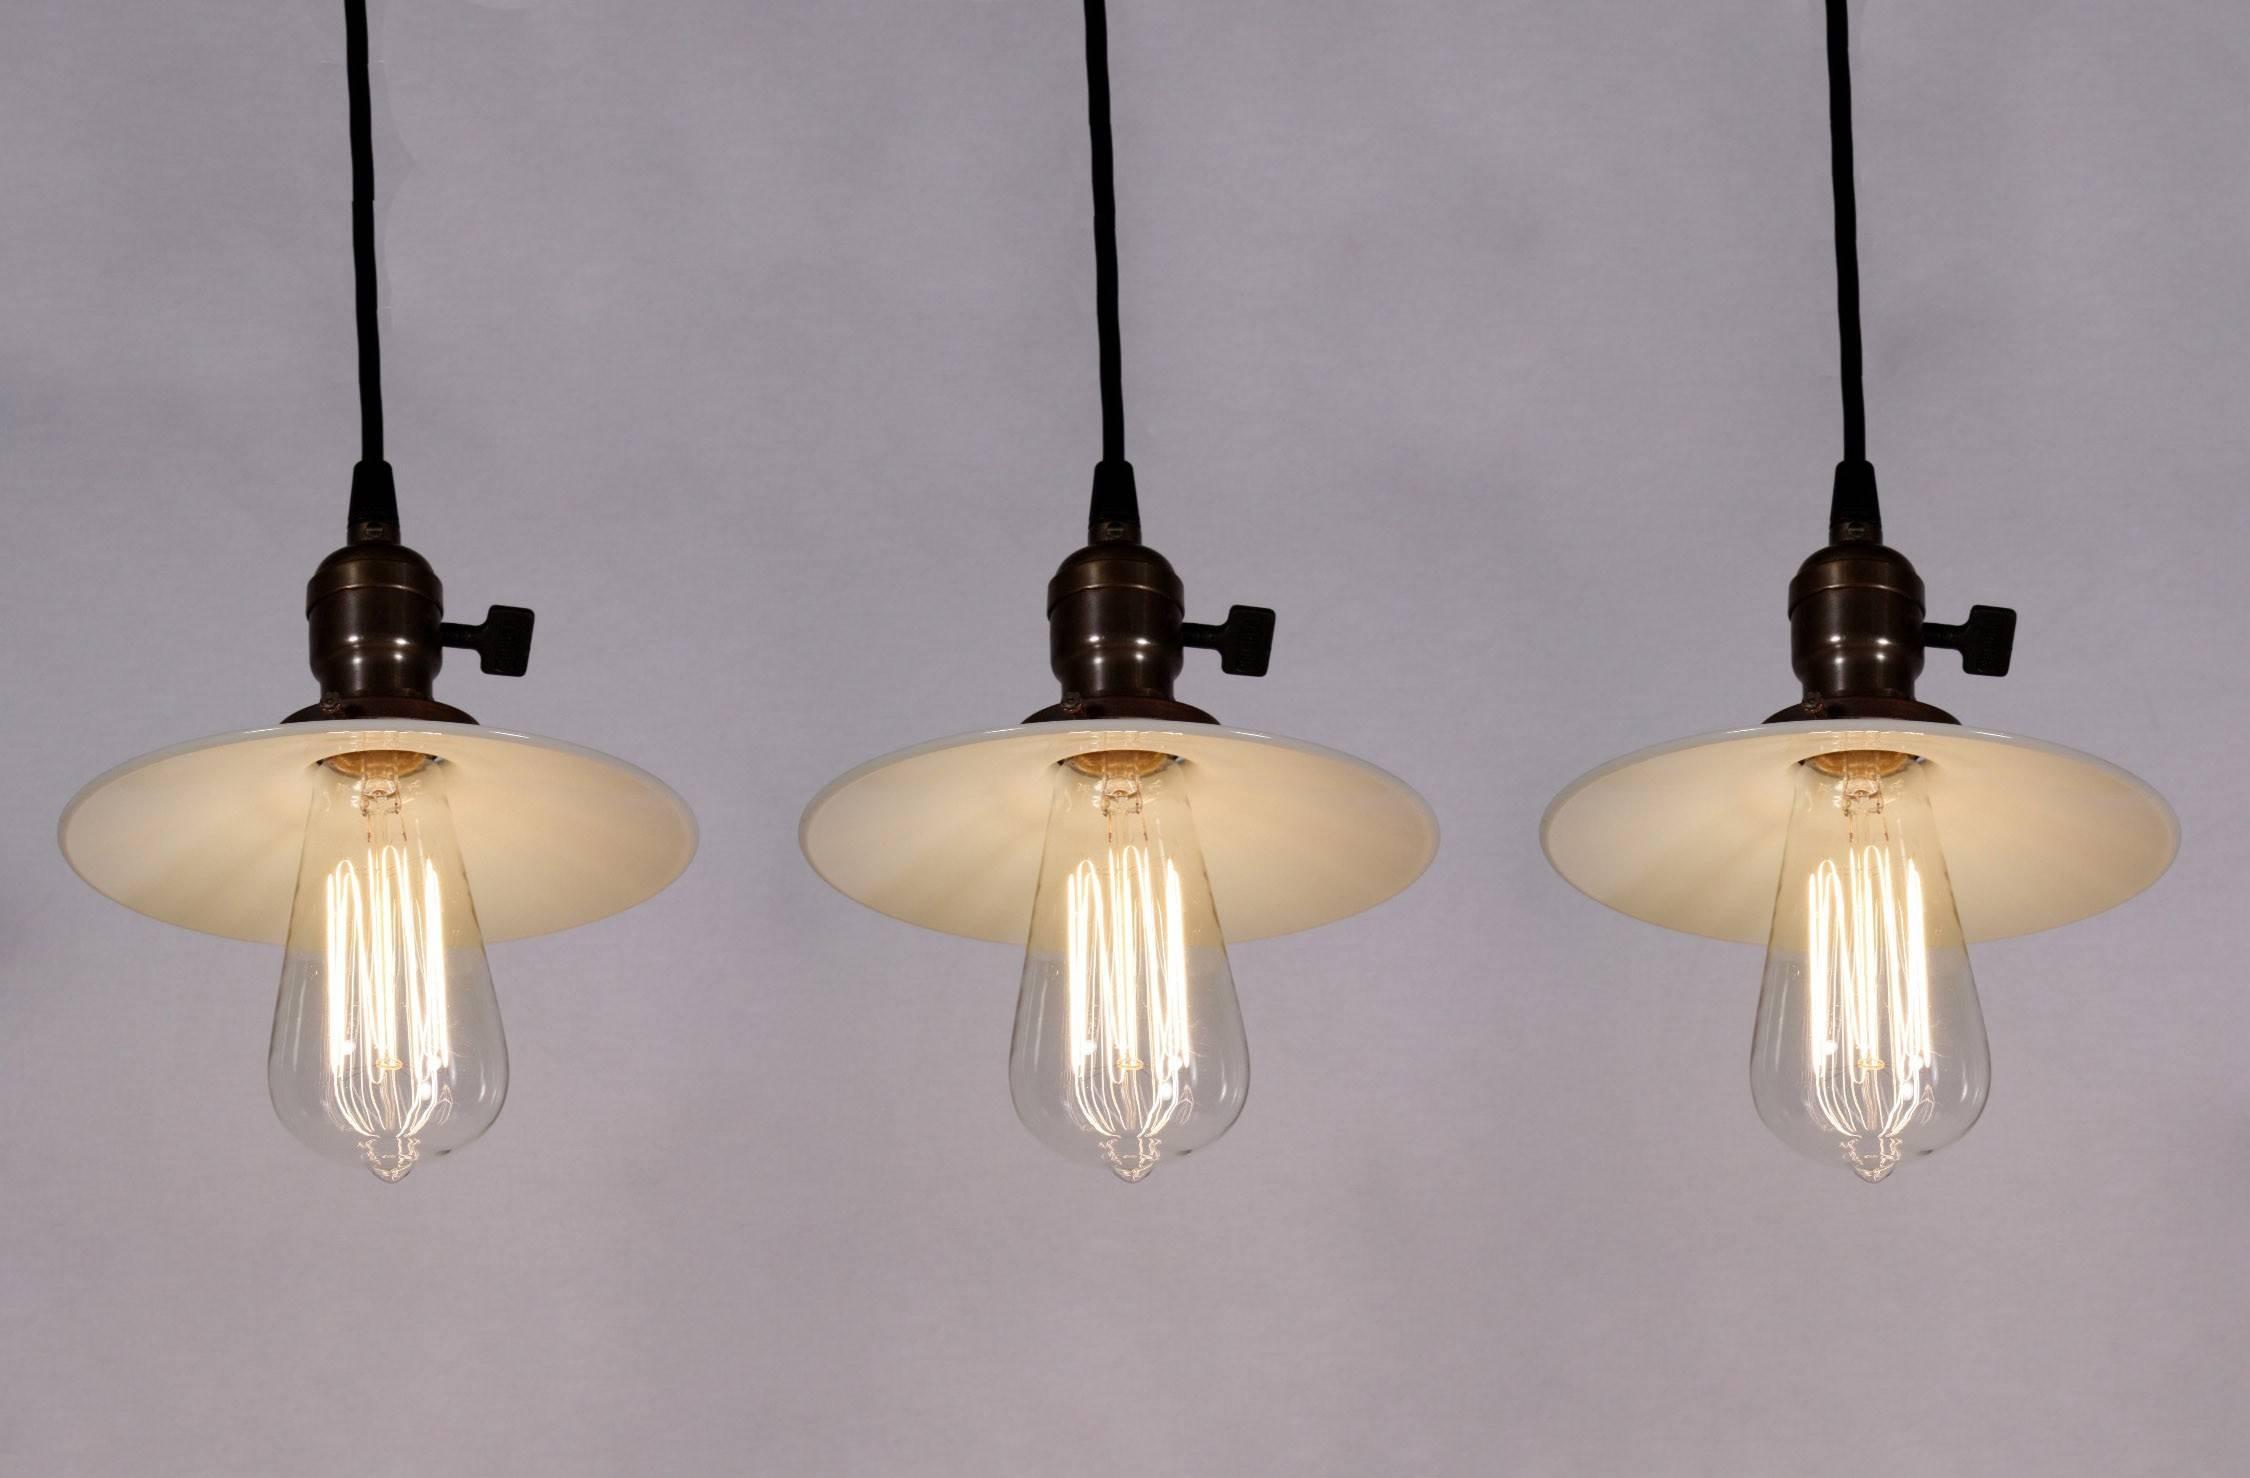 Inspirational Three Pendant Light Fixture 47 In Ceiling Light With Intended For Pull Chain Pendant Lights Fixtures (View 14 of 15)